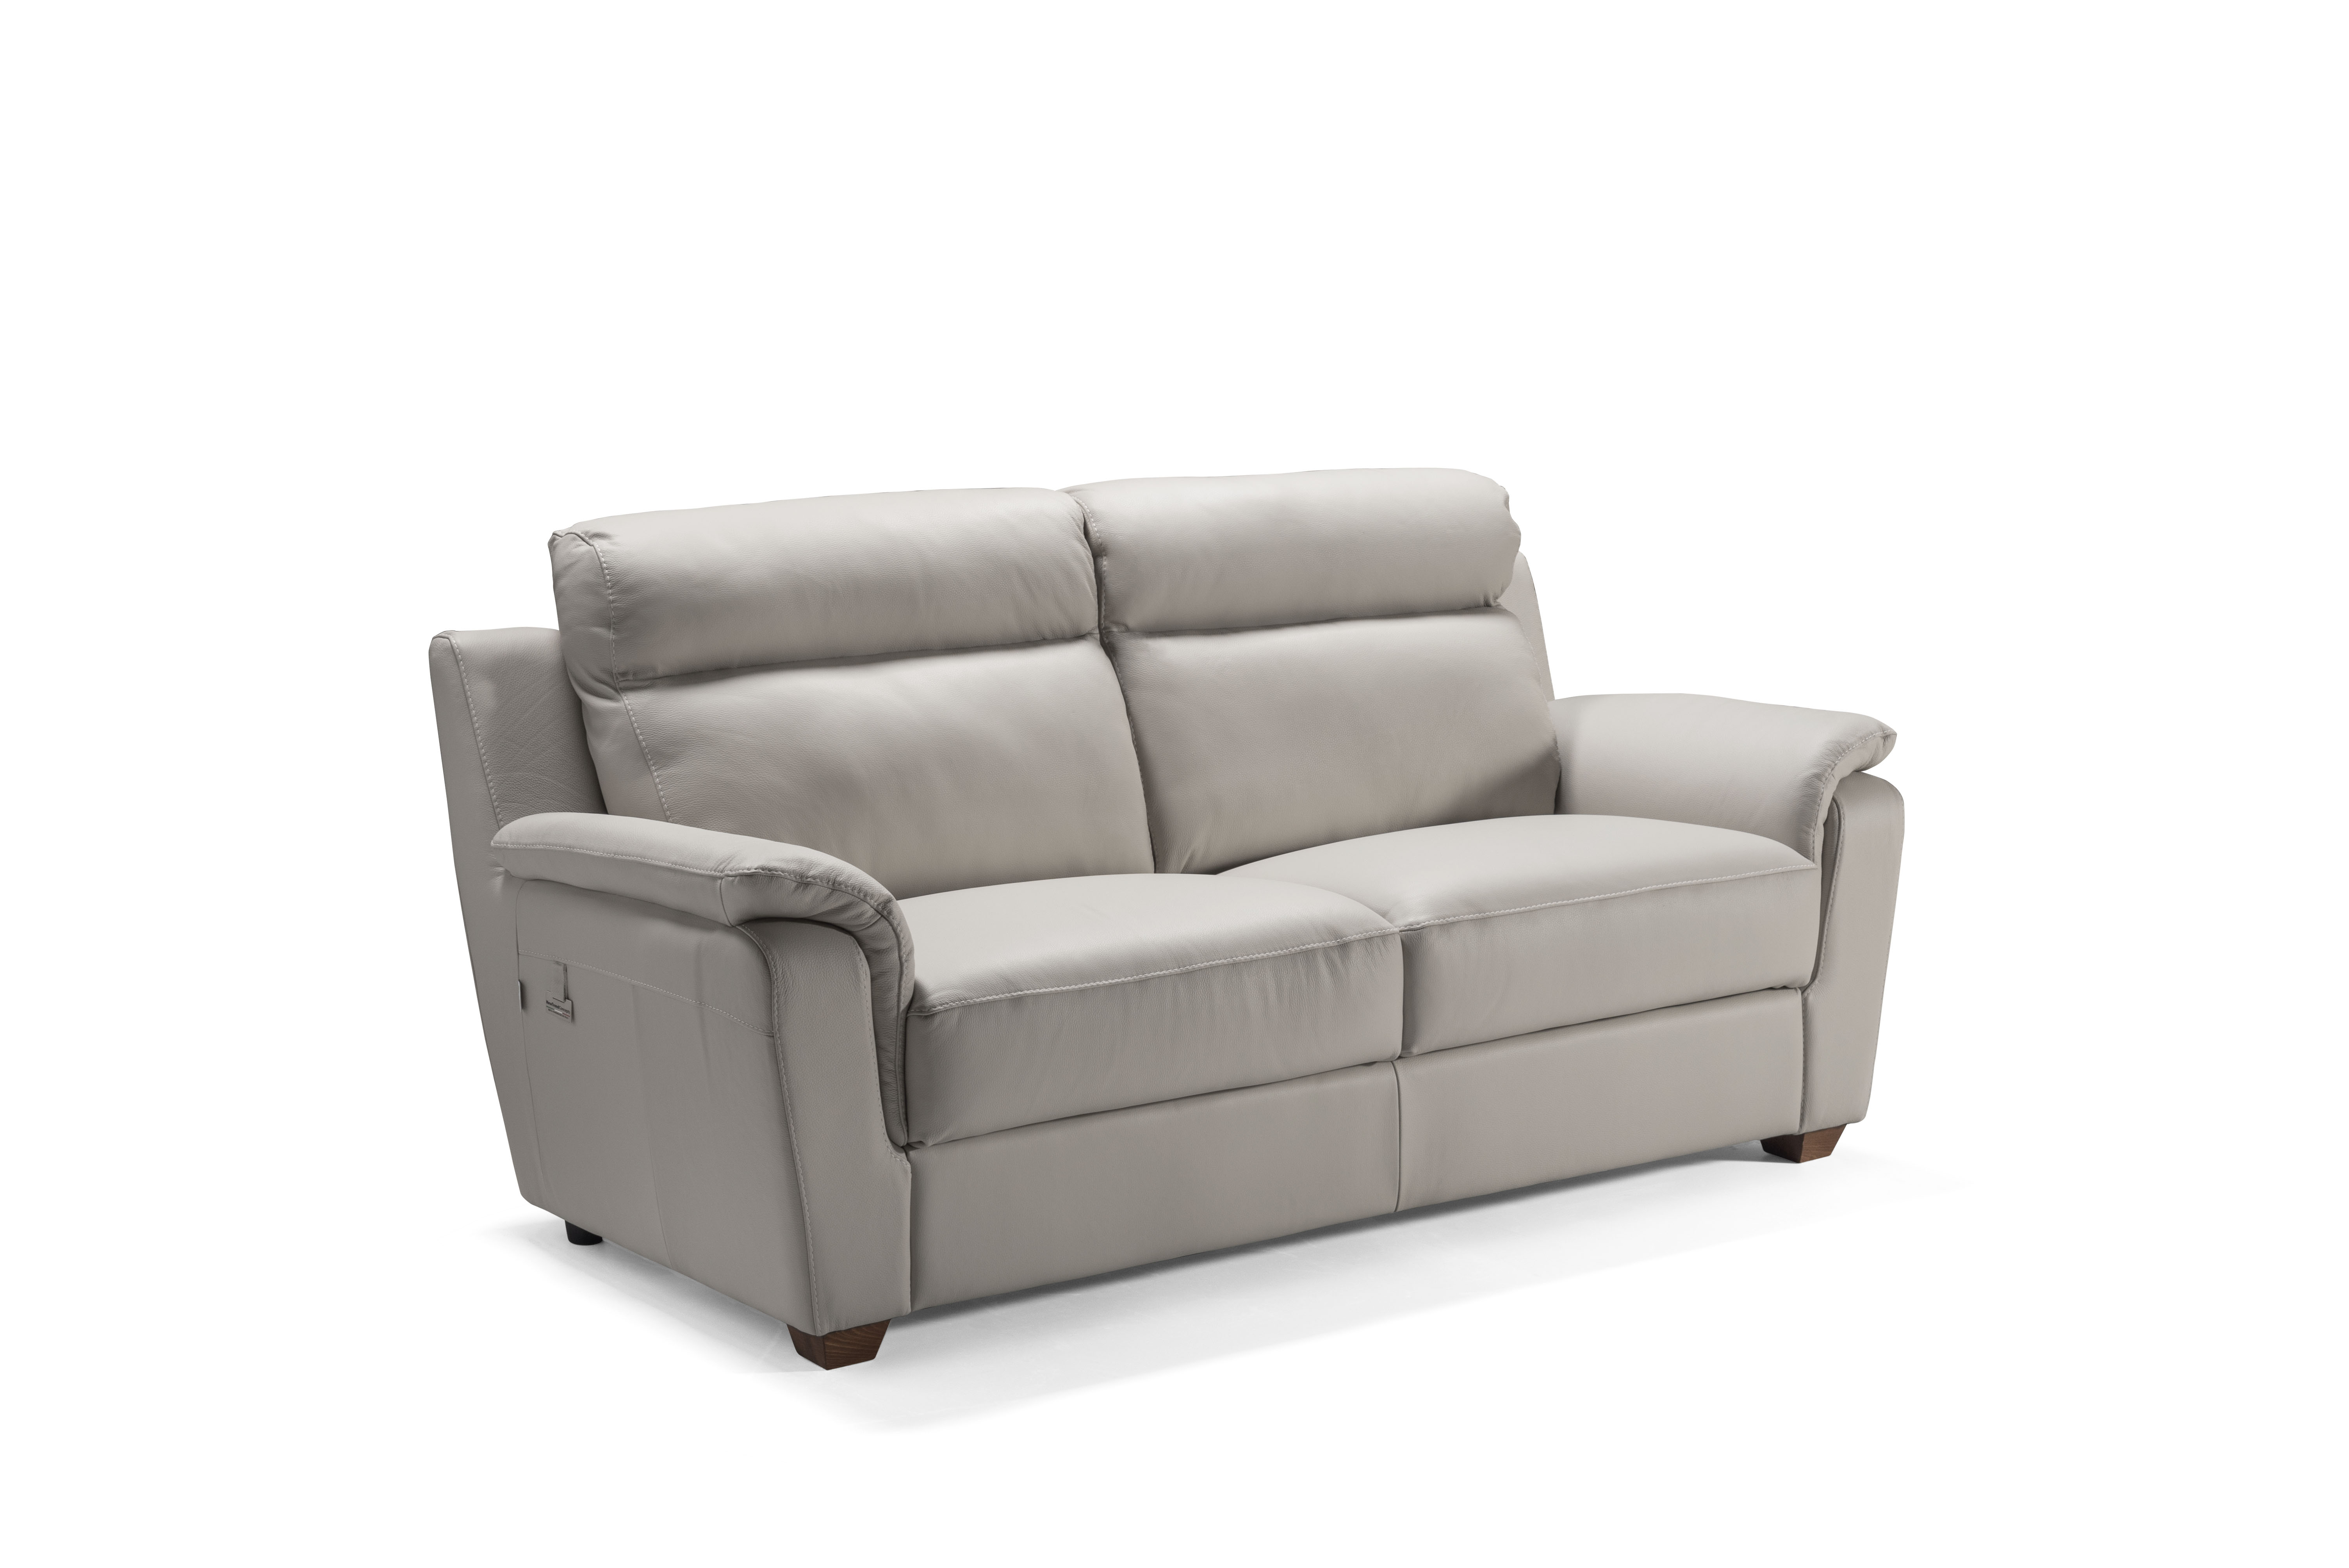 EDNA Italian Leather 3 & 2 Seat Sofas - Light Grey Cenere. RRP £3399 - Image 2 of 4